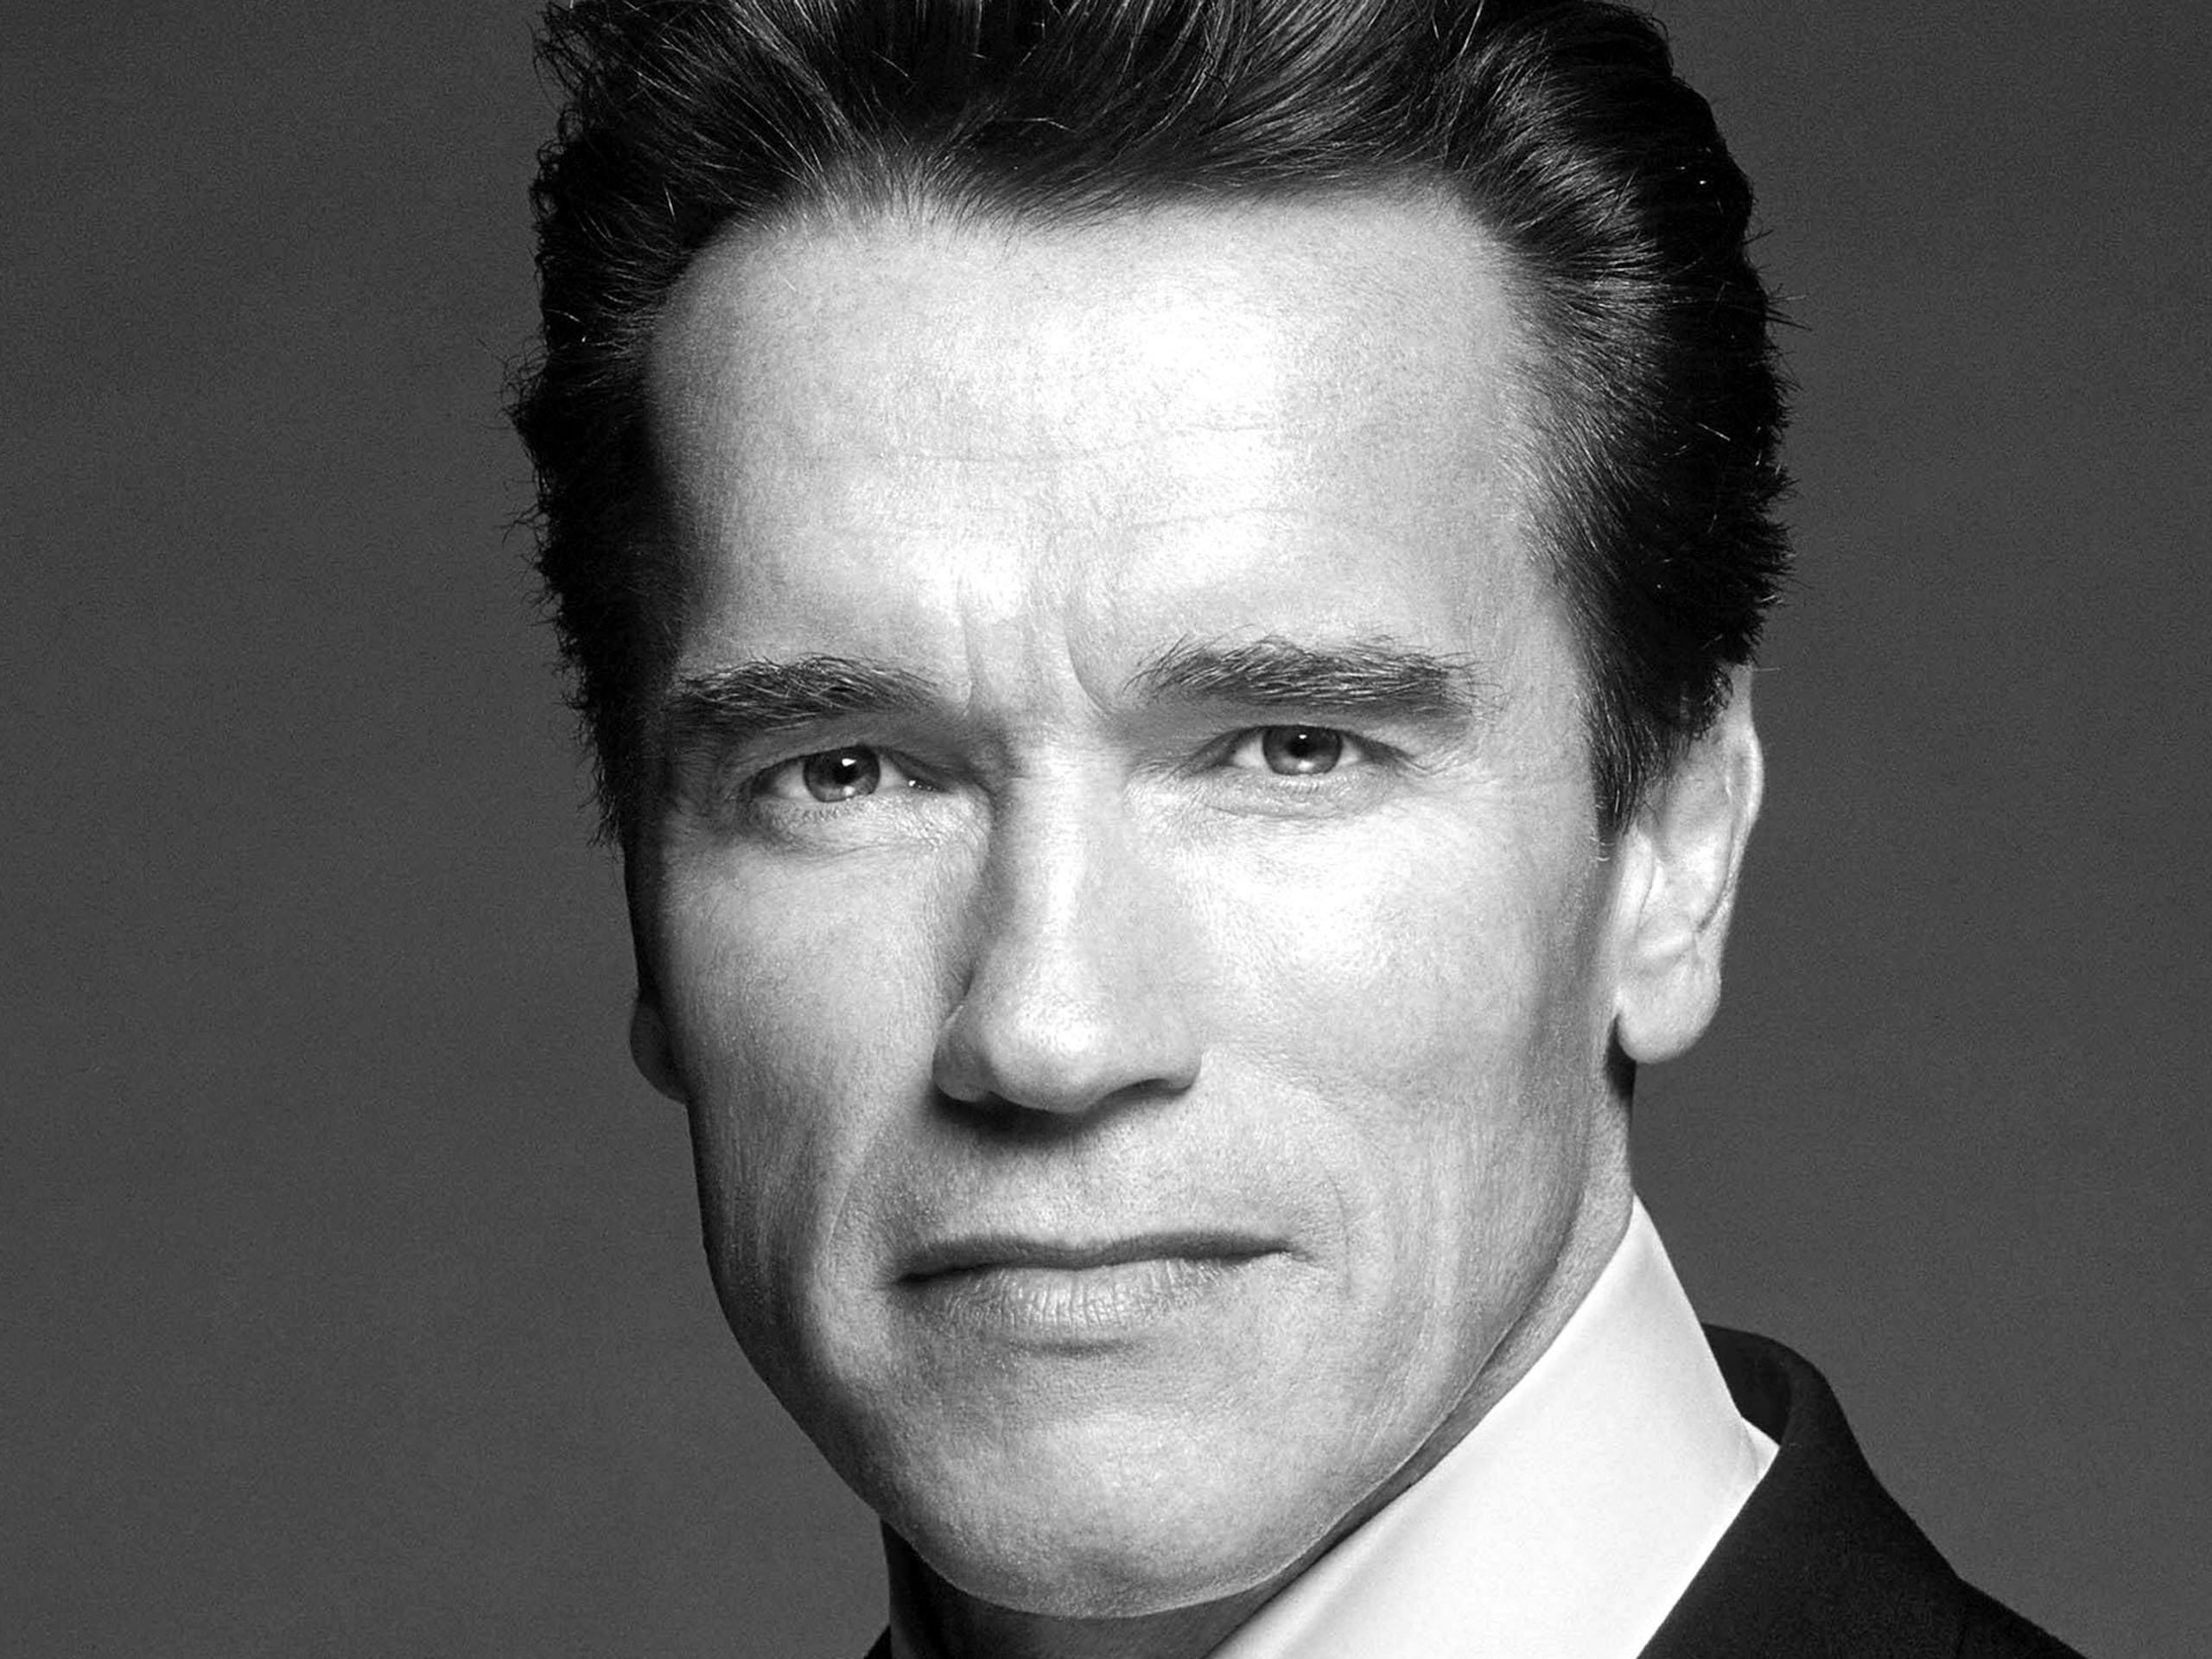 Arnold schwarzenegger face black and white